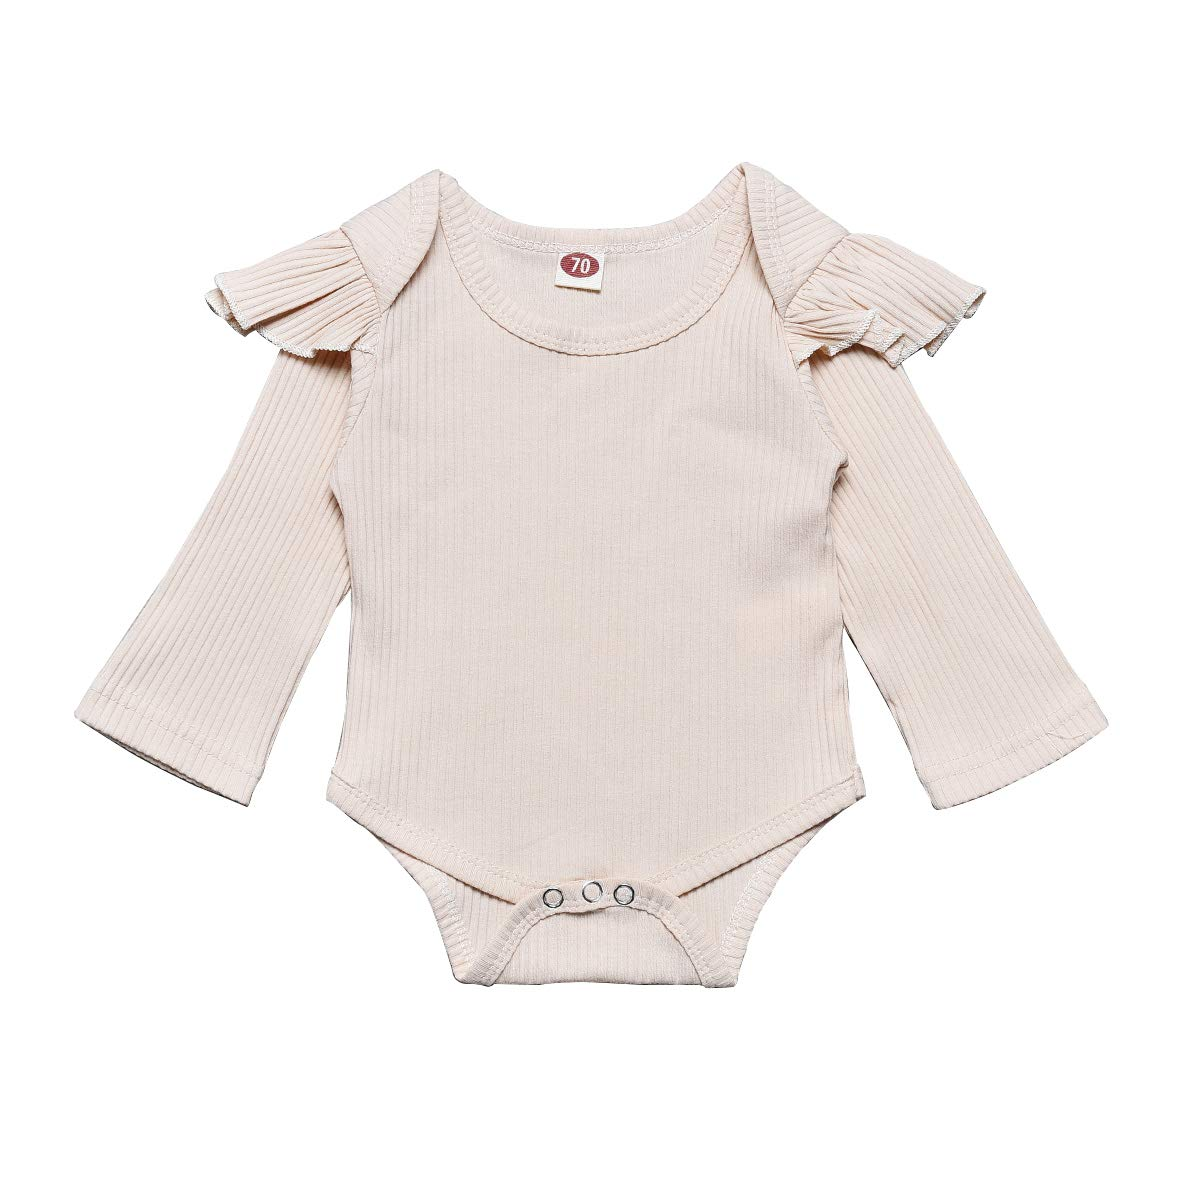 Willow Dance Newborn Baby Girl Boy Solid Romper Basic Plain One Piece Bodysuit Jumpsuit Outfits Clothes